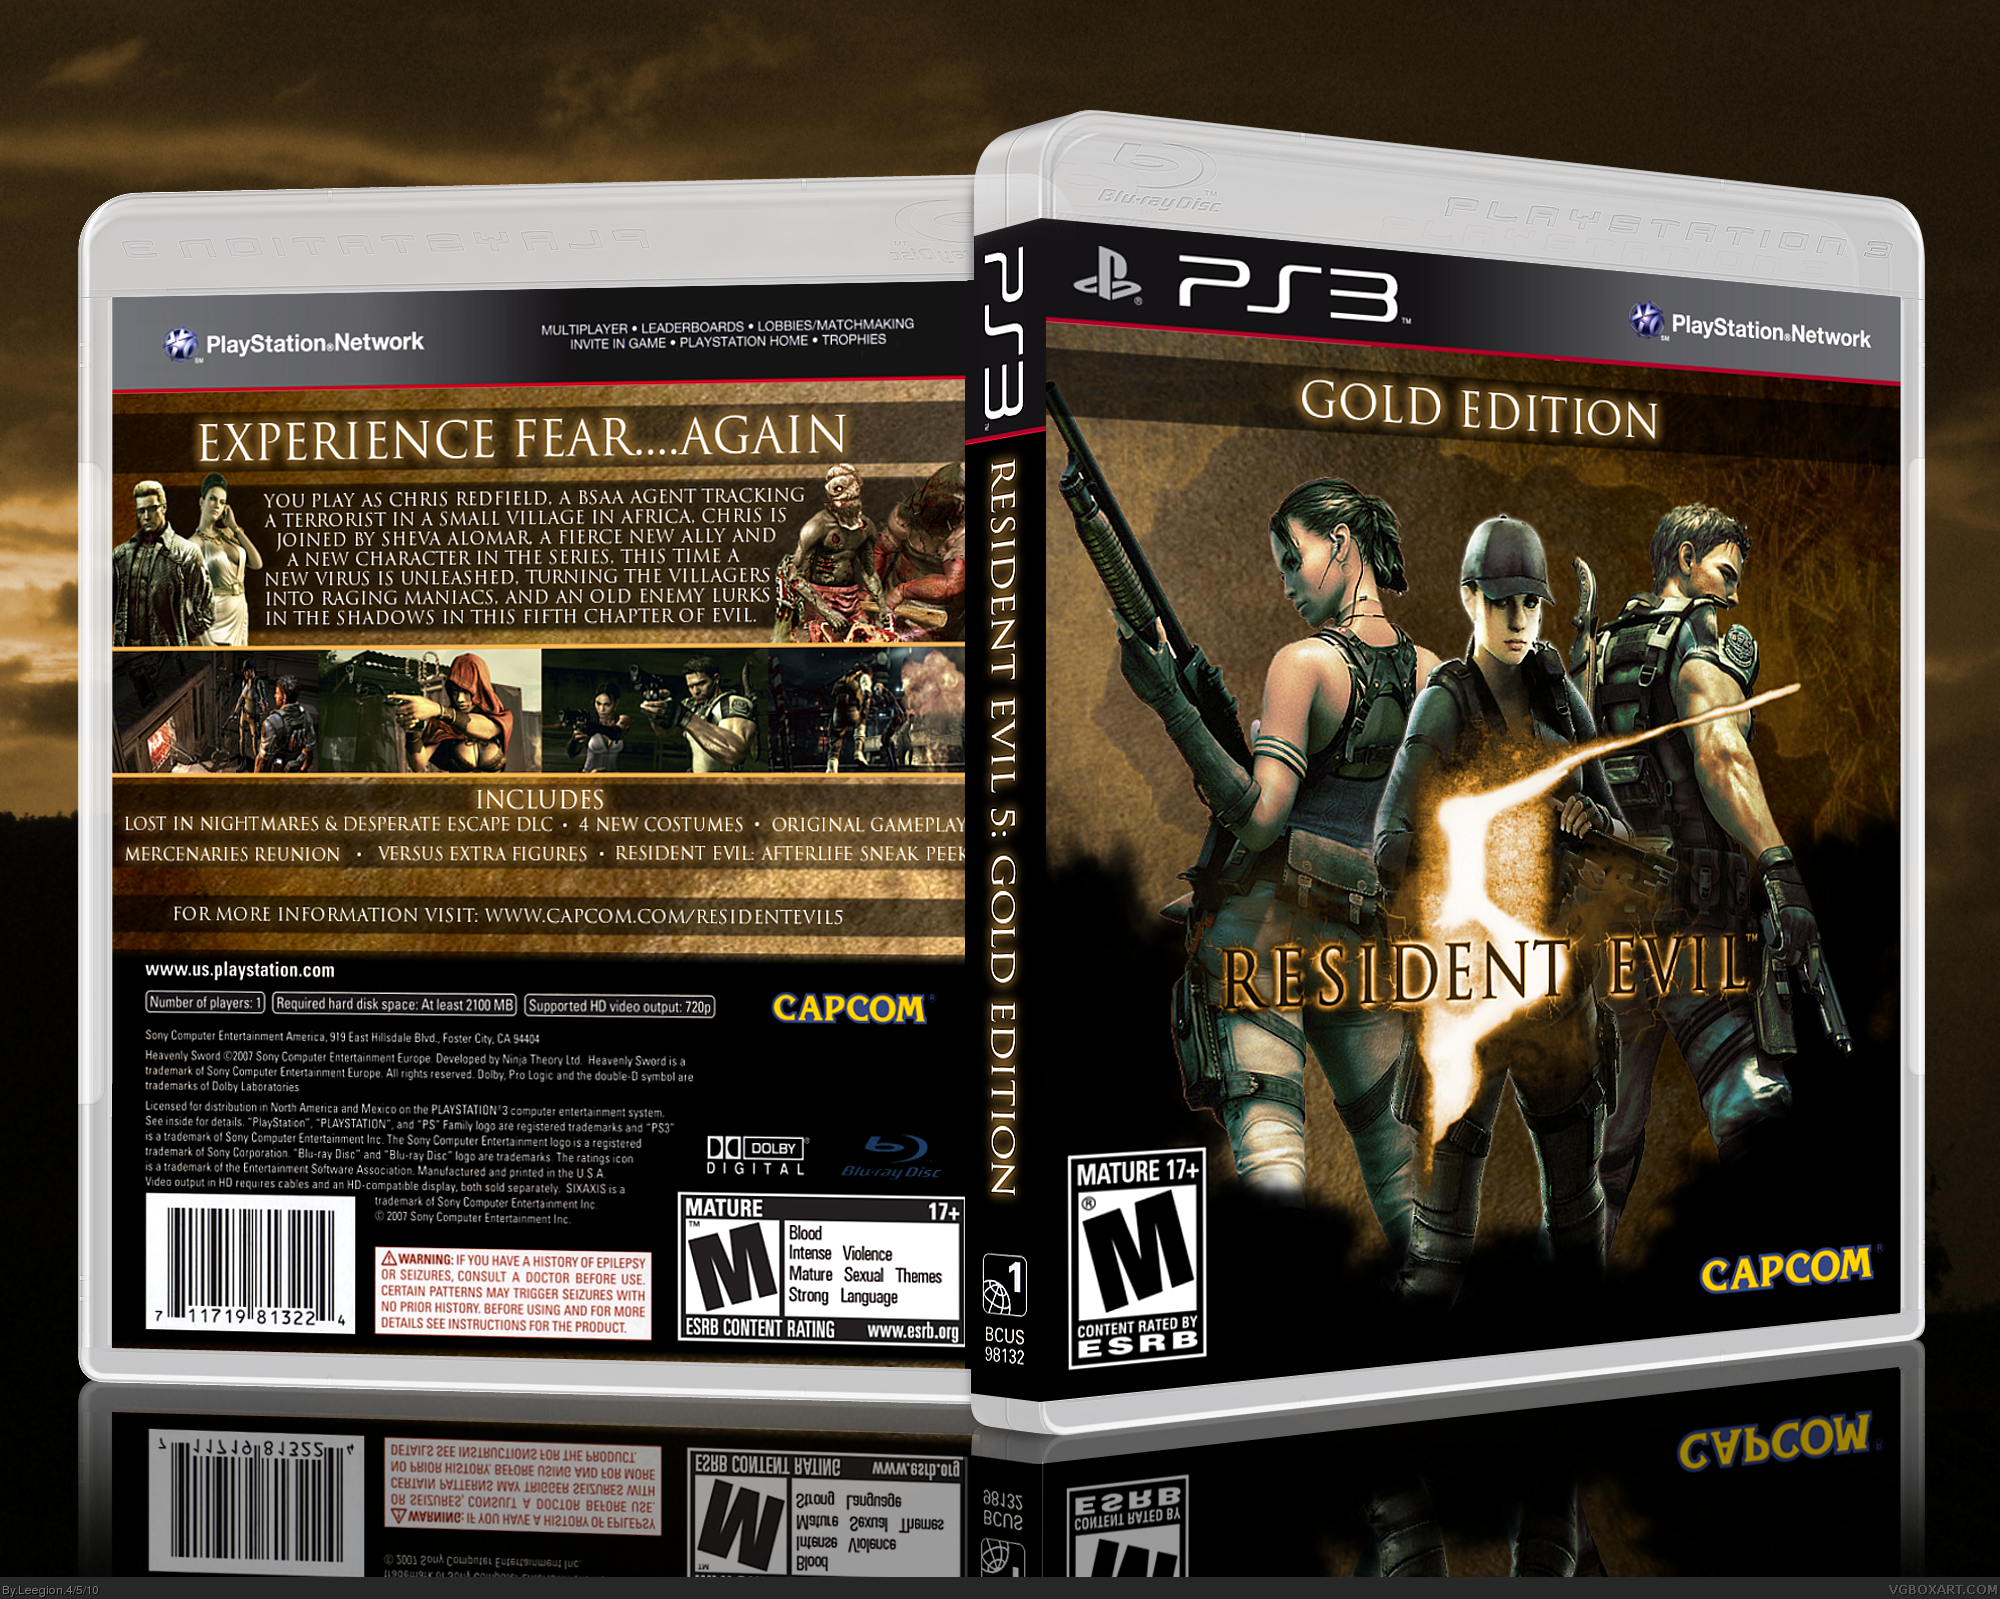 Resident Evil 5 Gold Edition box cover